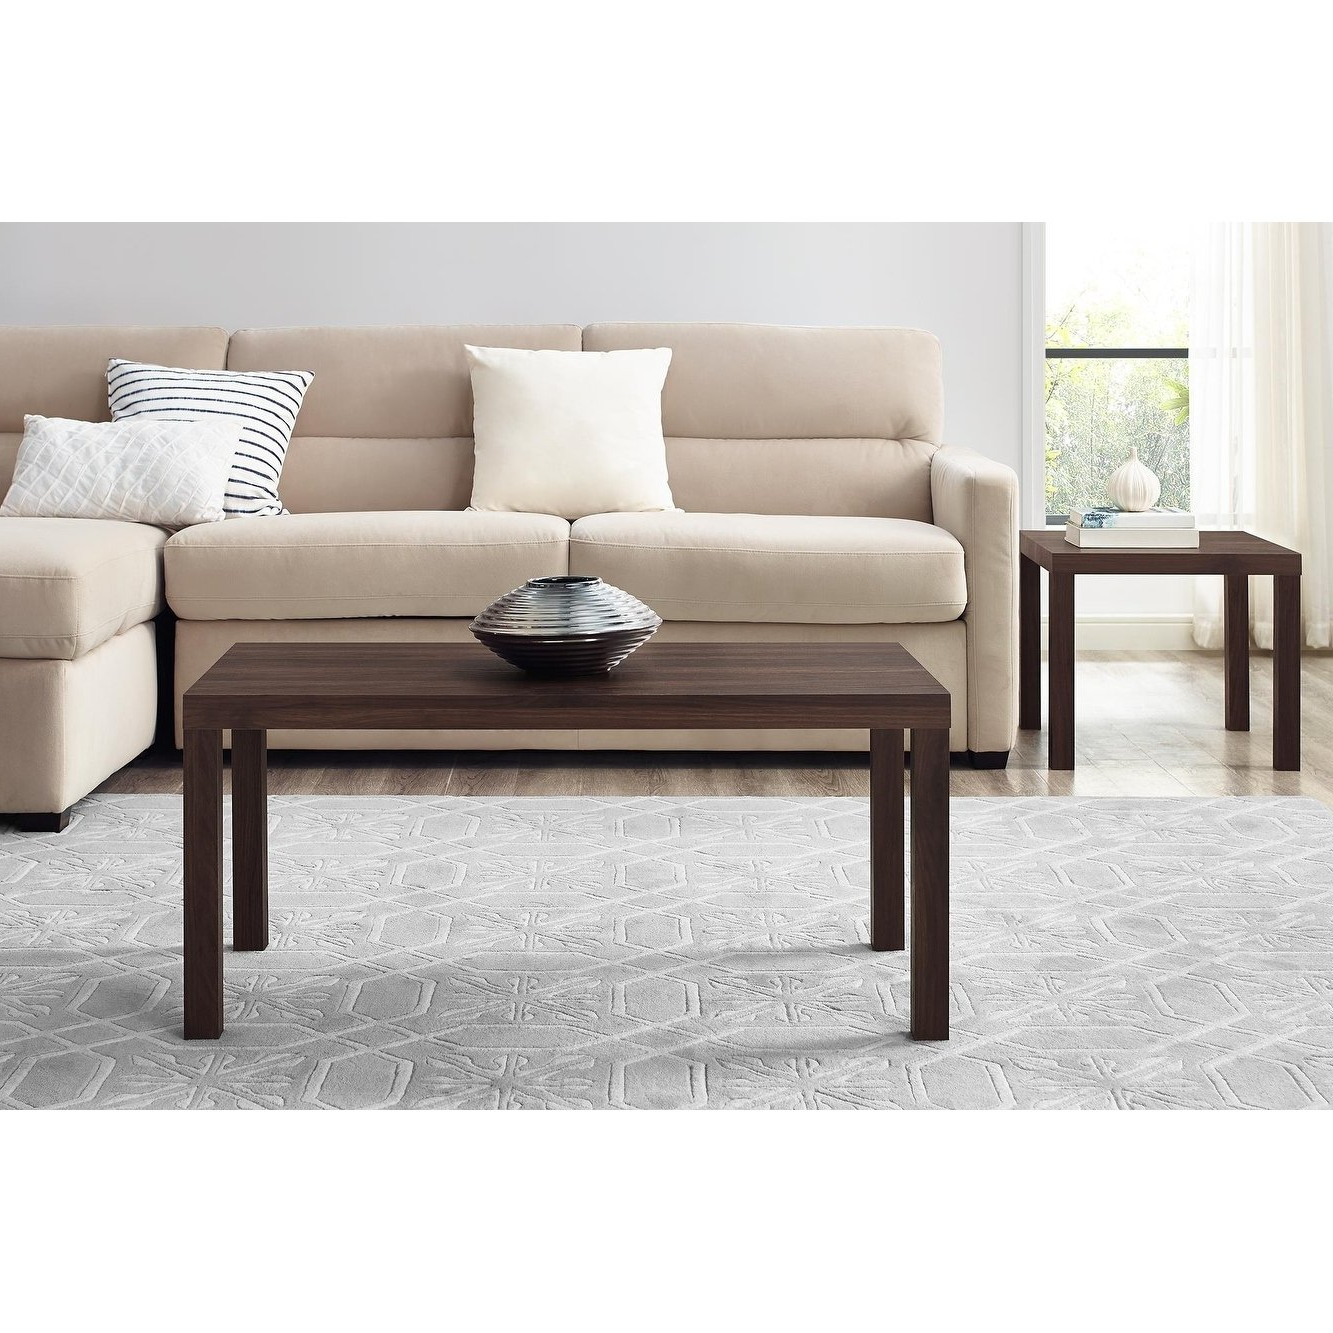 Trendy Jaxon Cocktail Tables Within Shop Avenue Greene Jaxon Walnut Coffee Table – Free Shipping Today (Gallery 17 of 20)